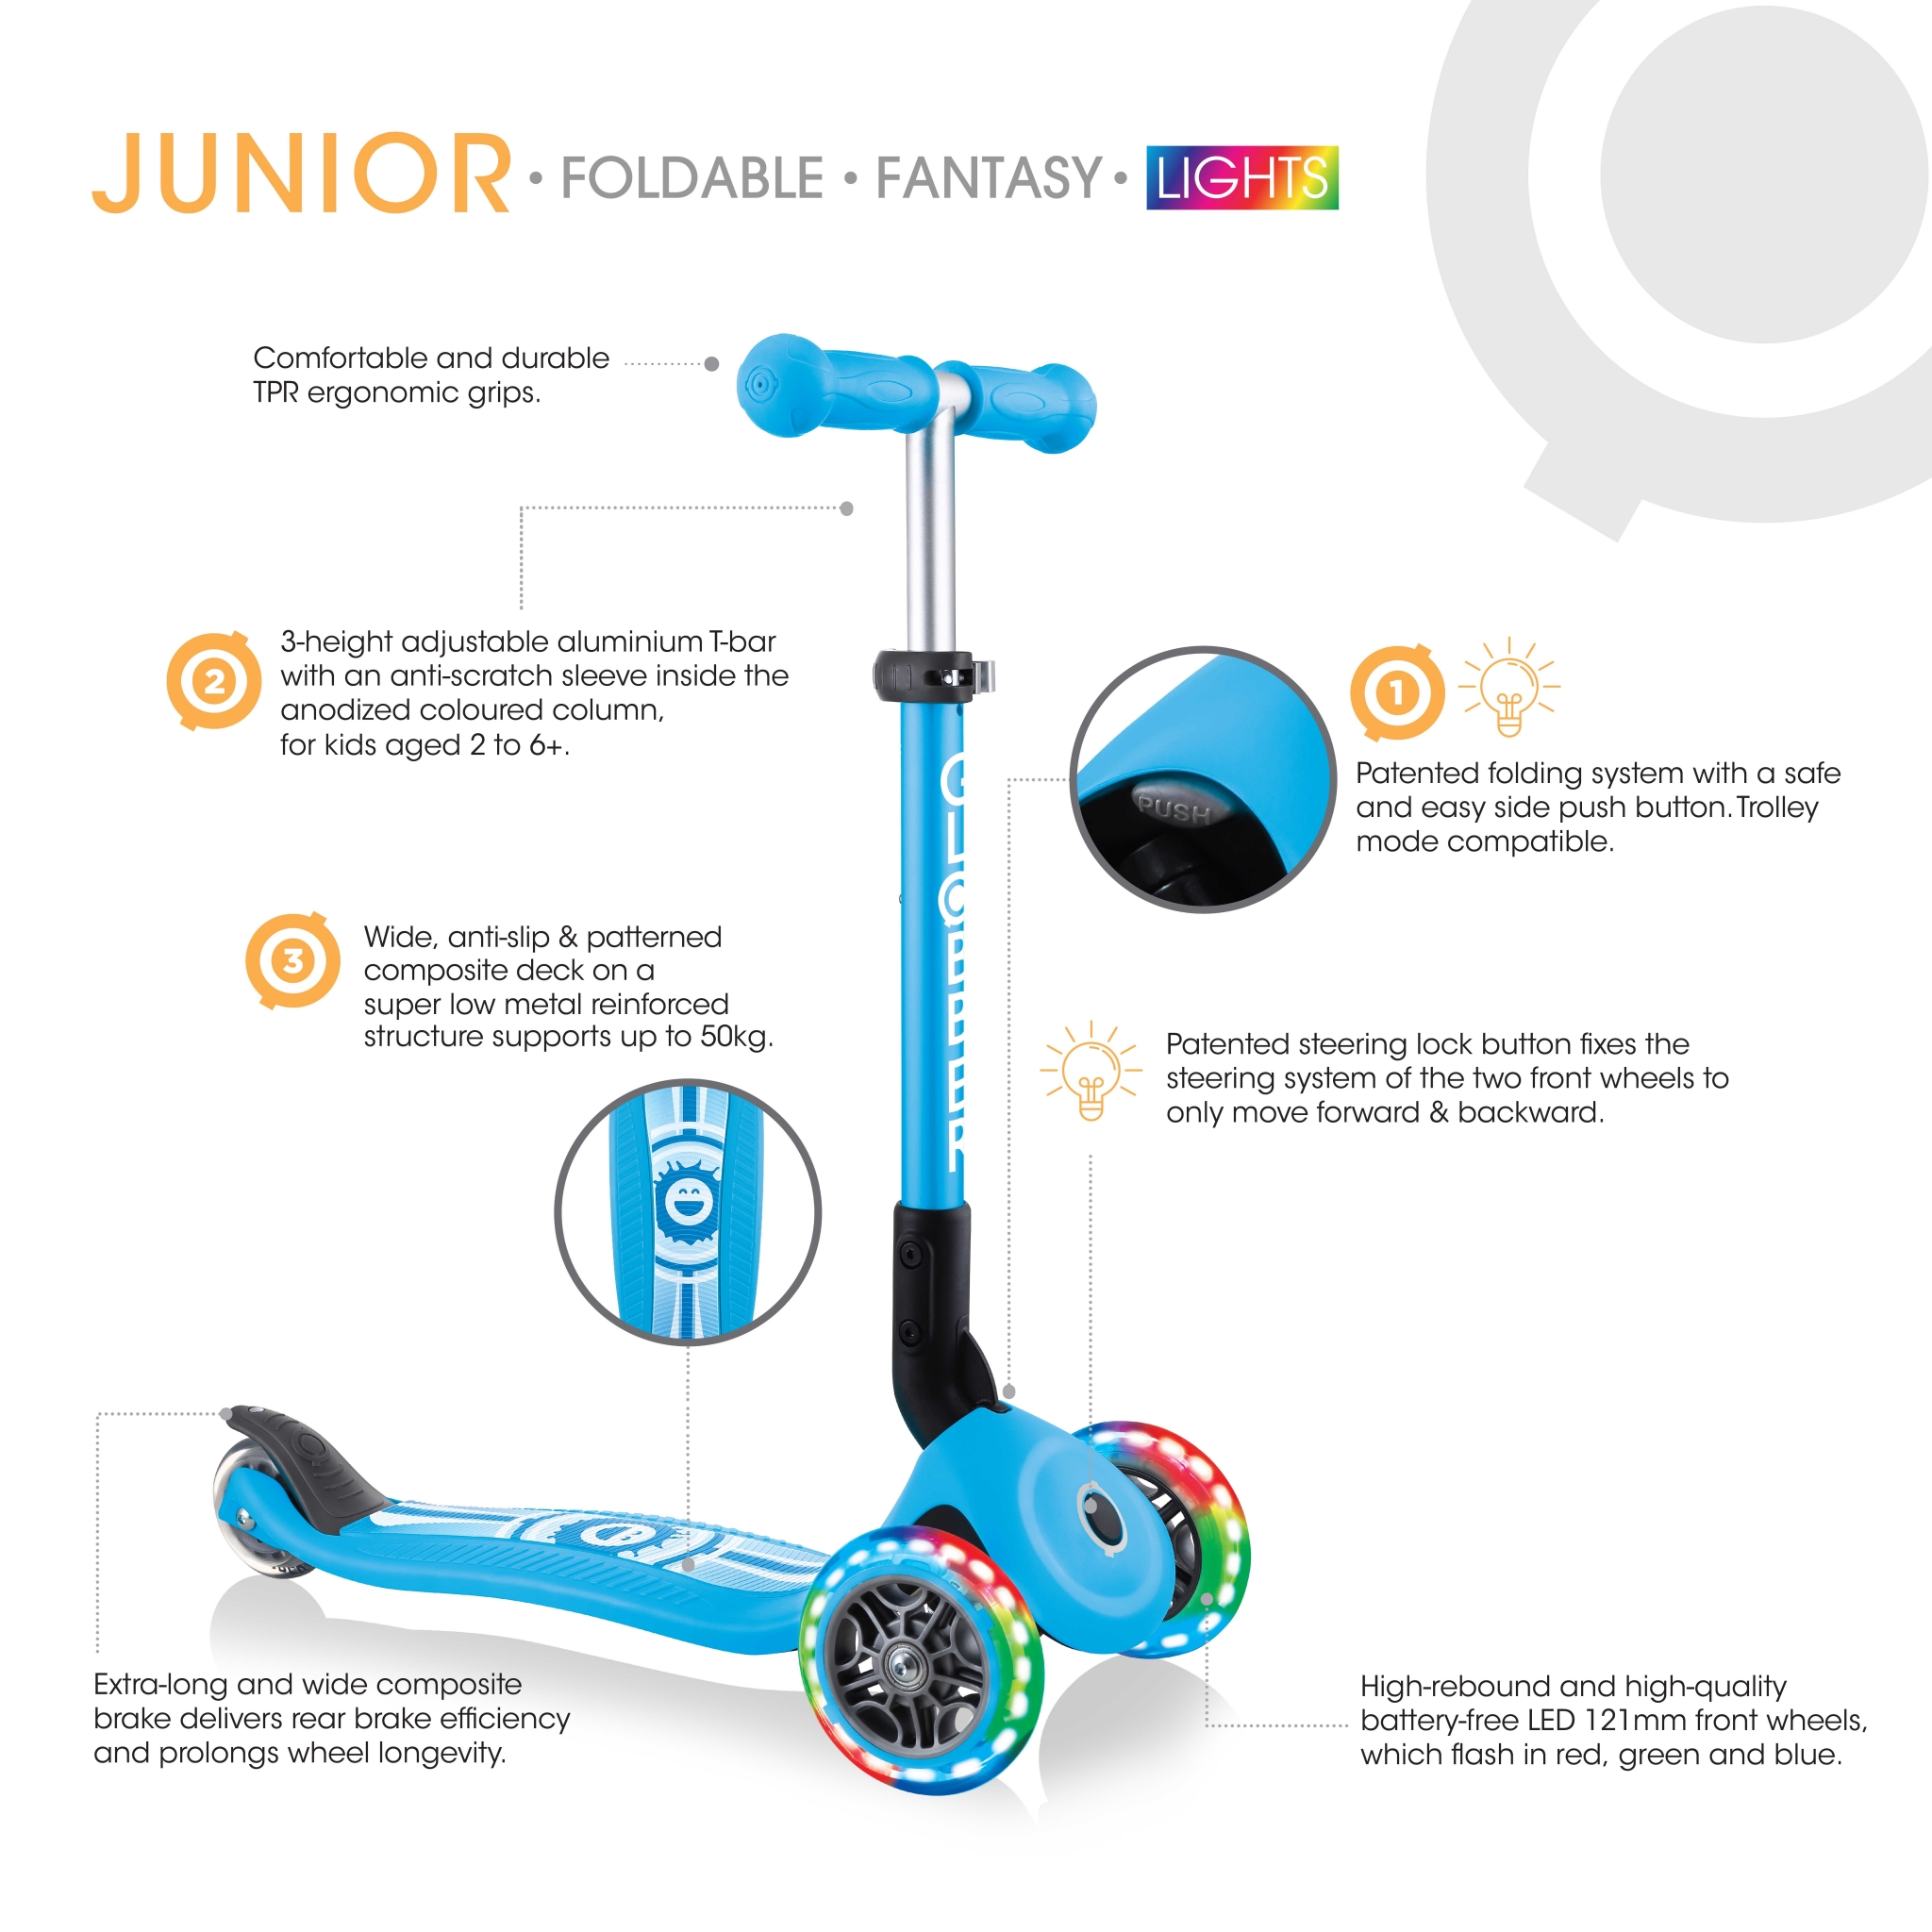 junior-foldable-fantasy-lights-3-wheel-scooter-for-2-year-old